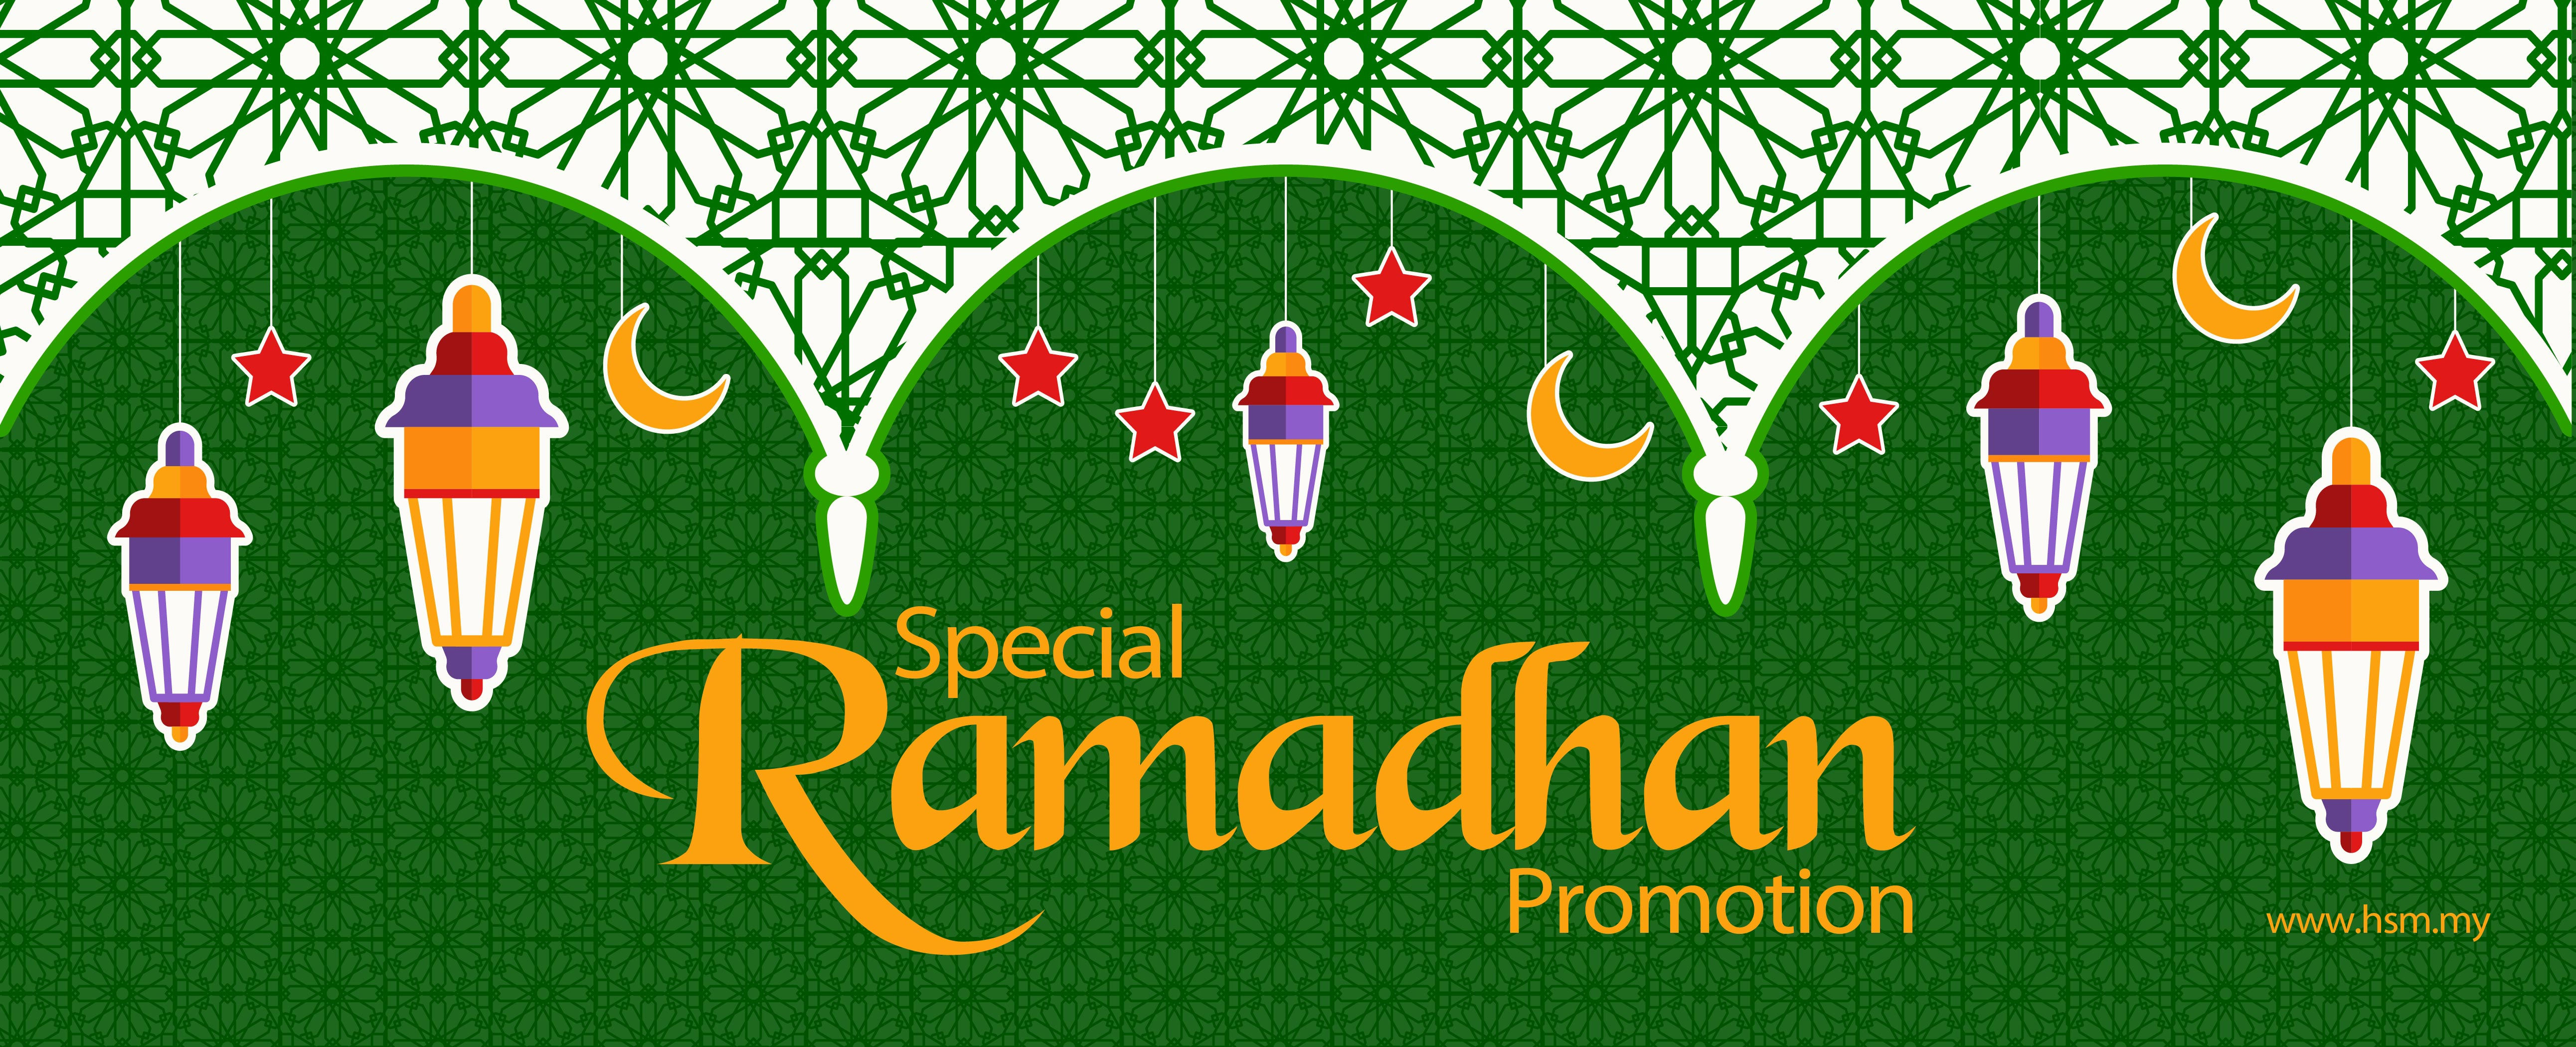 Hotel Sentral Special Ramadhan Promotion